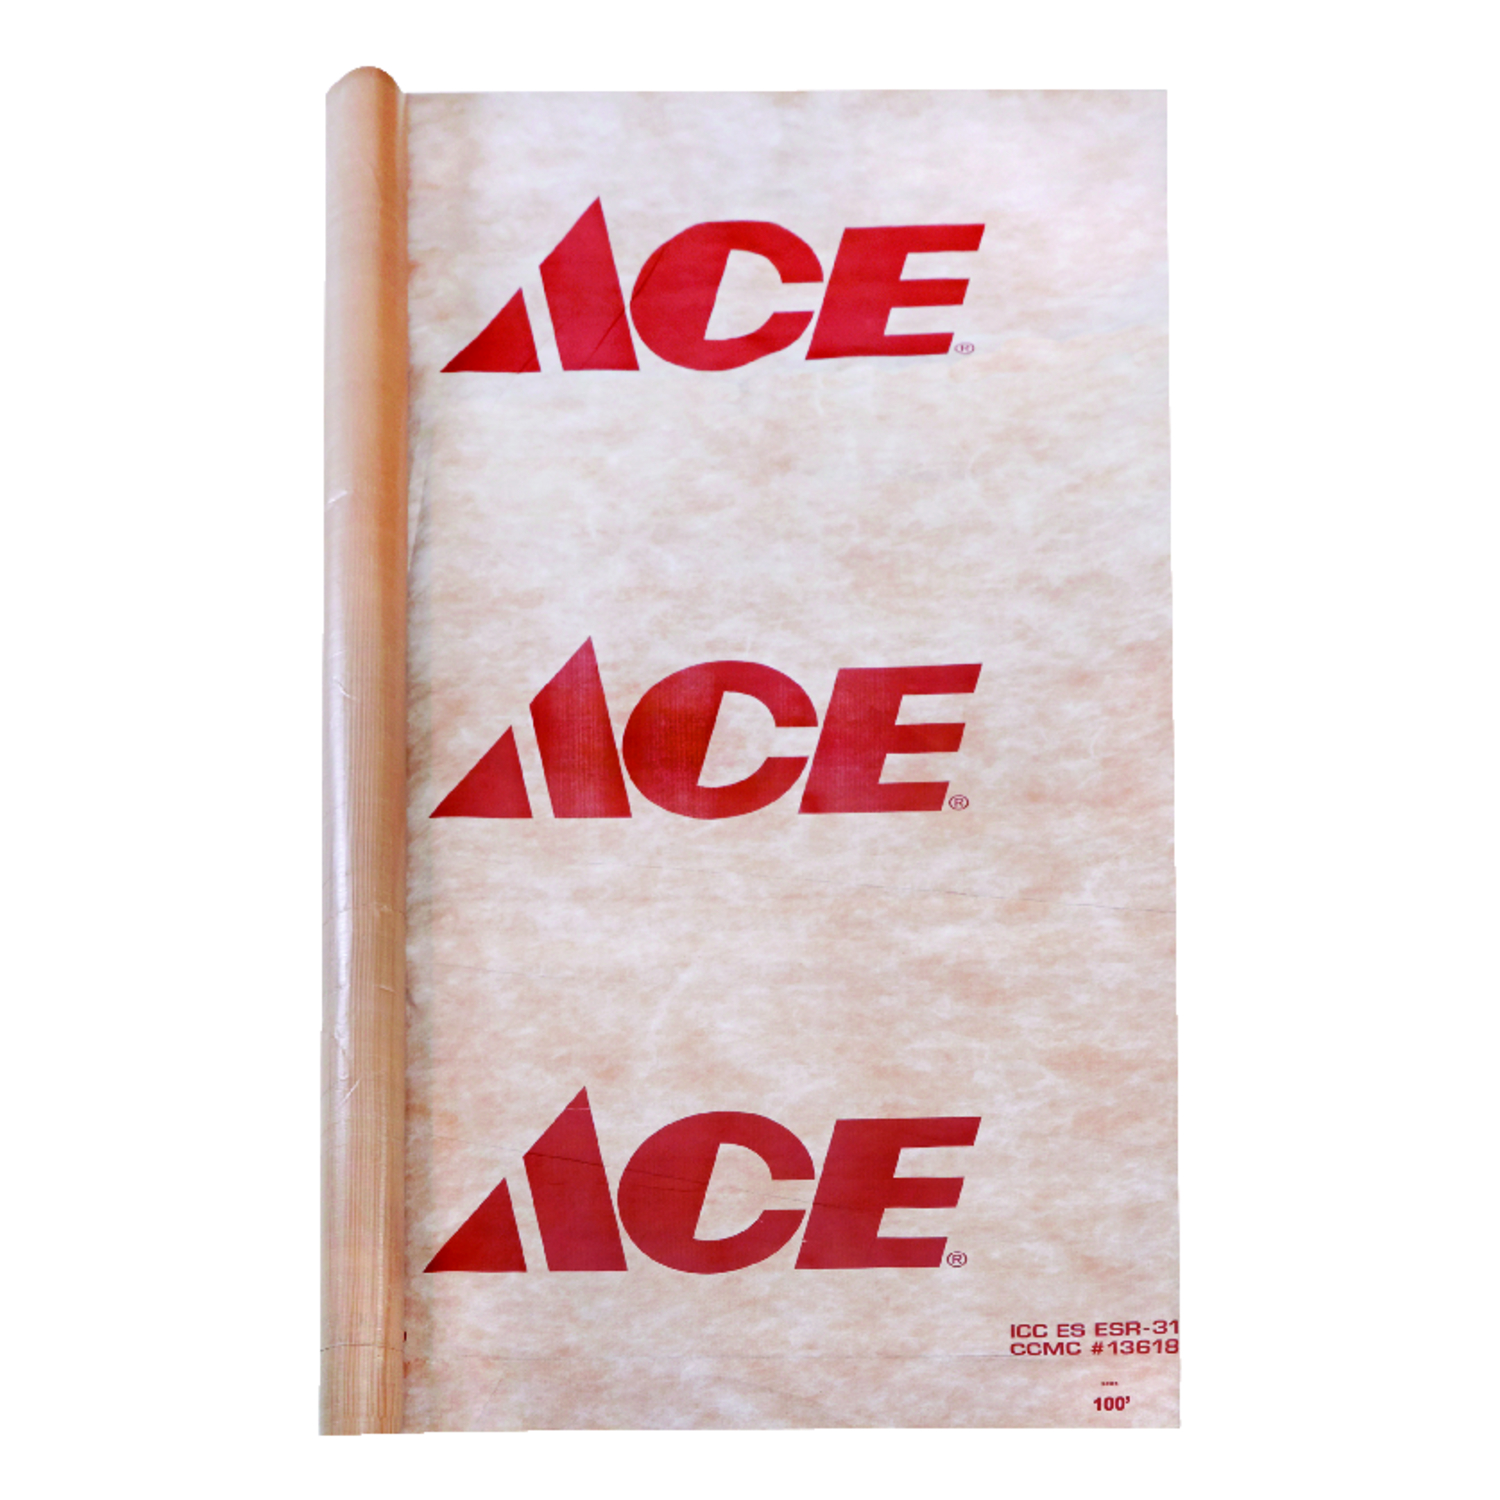 Ace  Housewrap Tear Resistant 9 ft. x 150 ft.  500 sq. in.  ICC Code 9 ft.